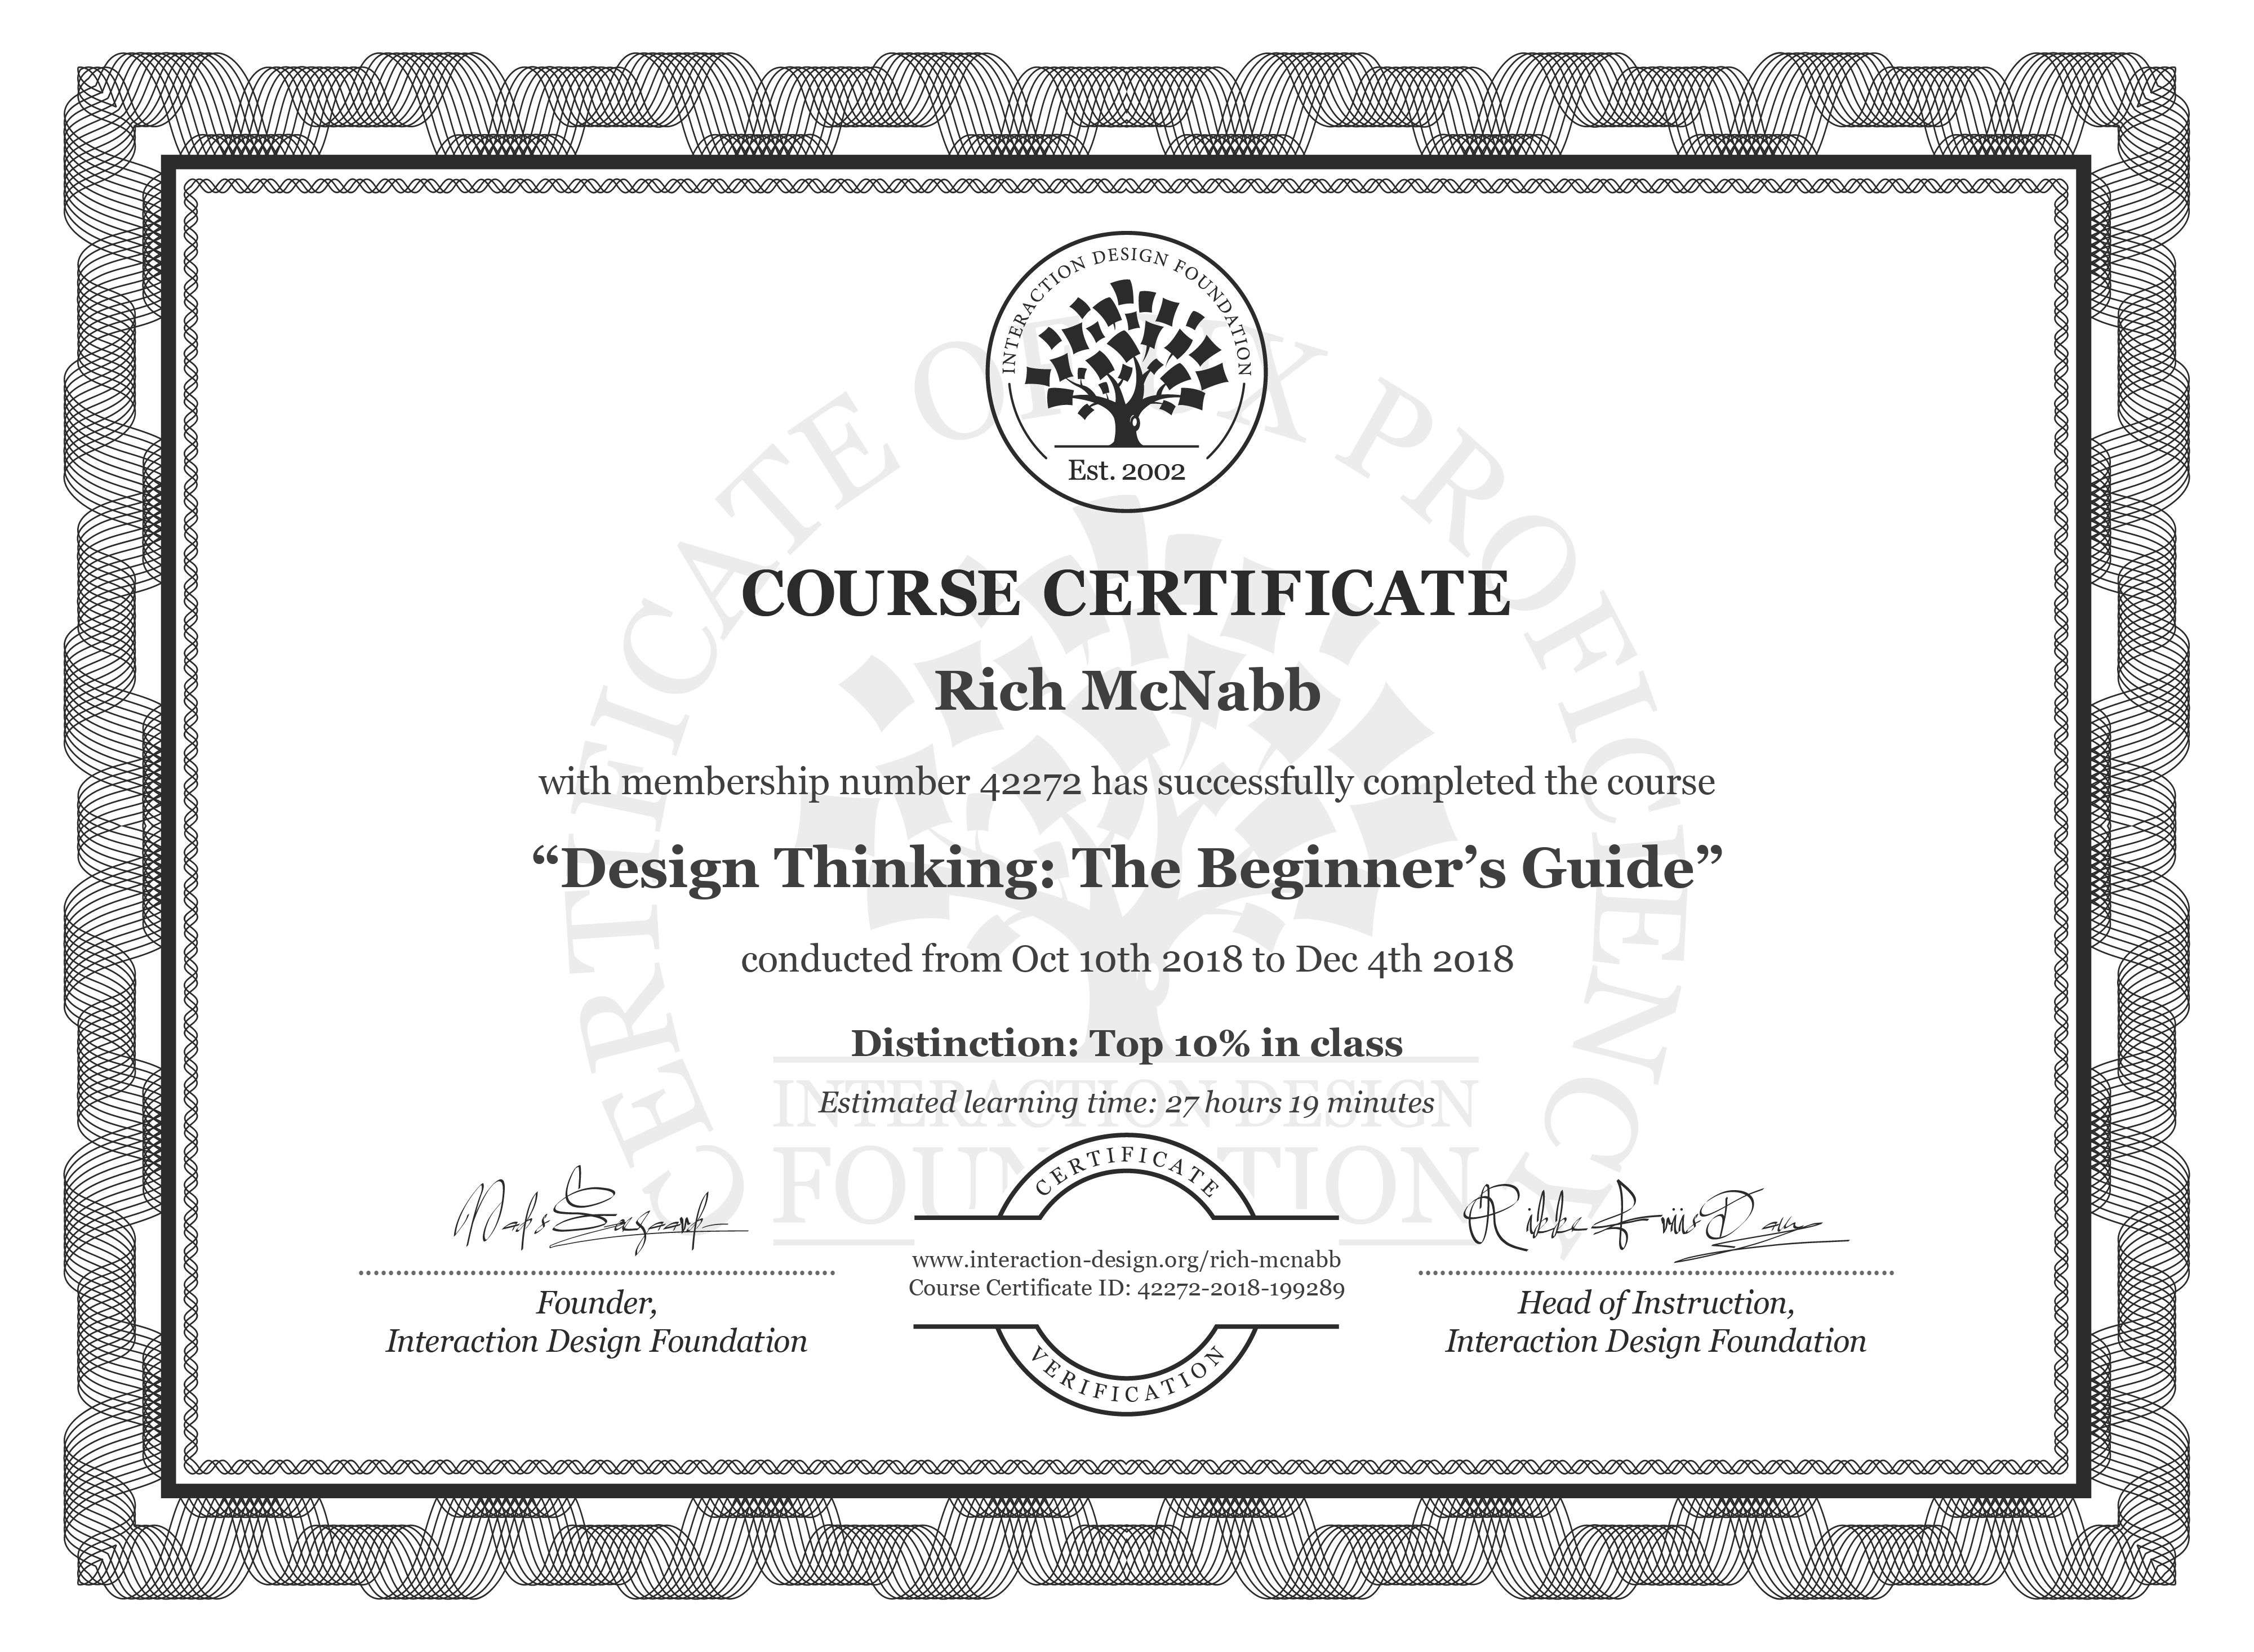 Rich McNabb: Course Certificate - Design Thinking: The Beginner's Guide